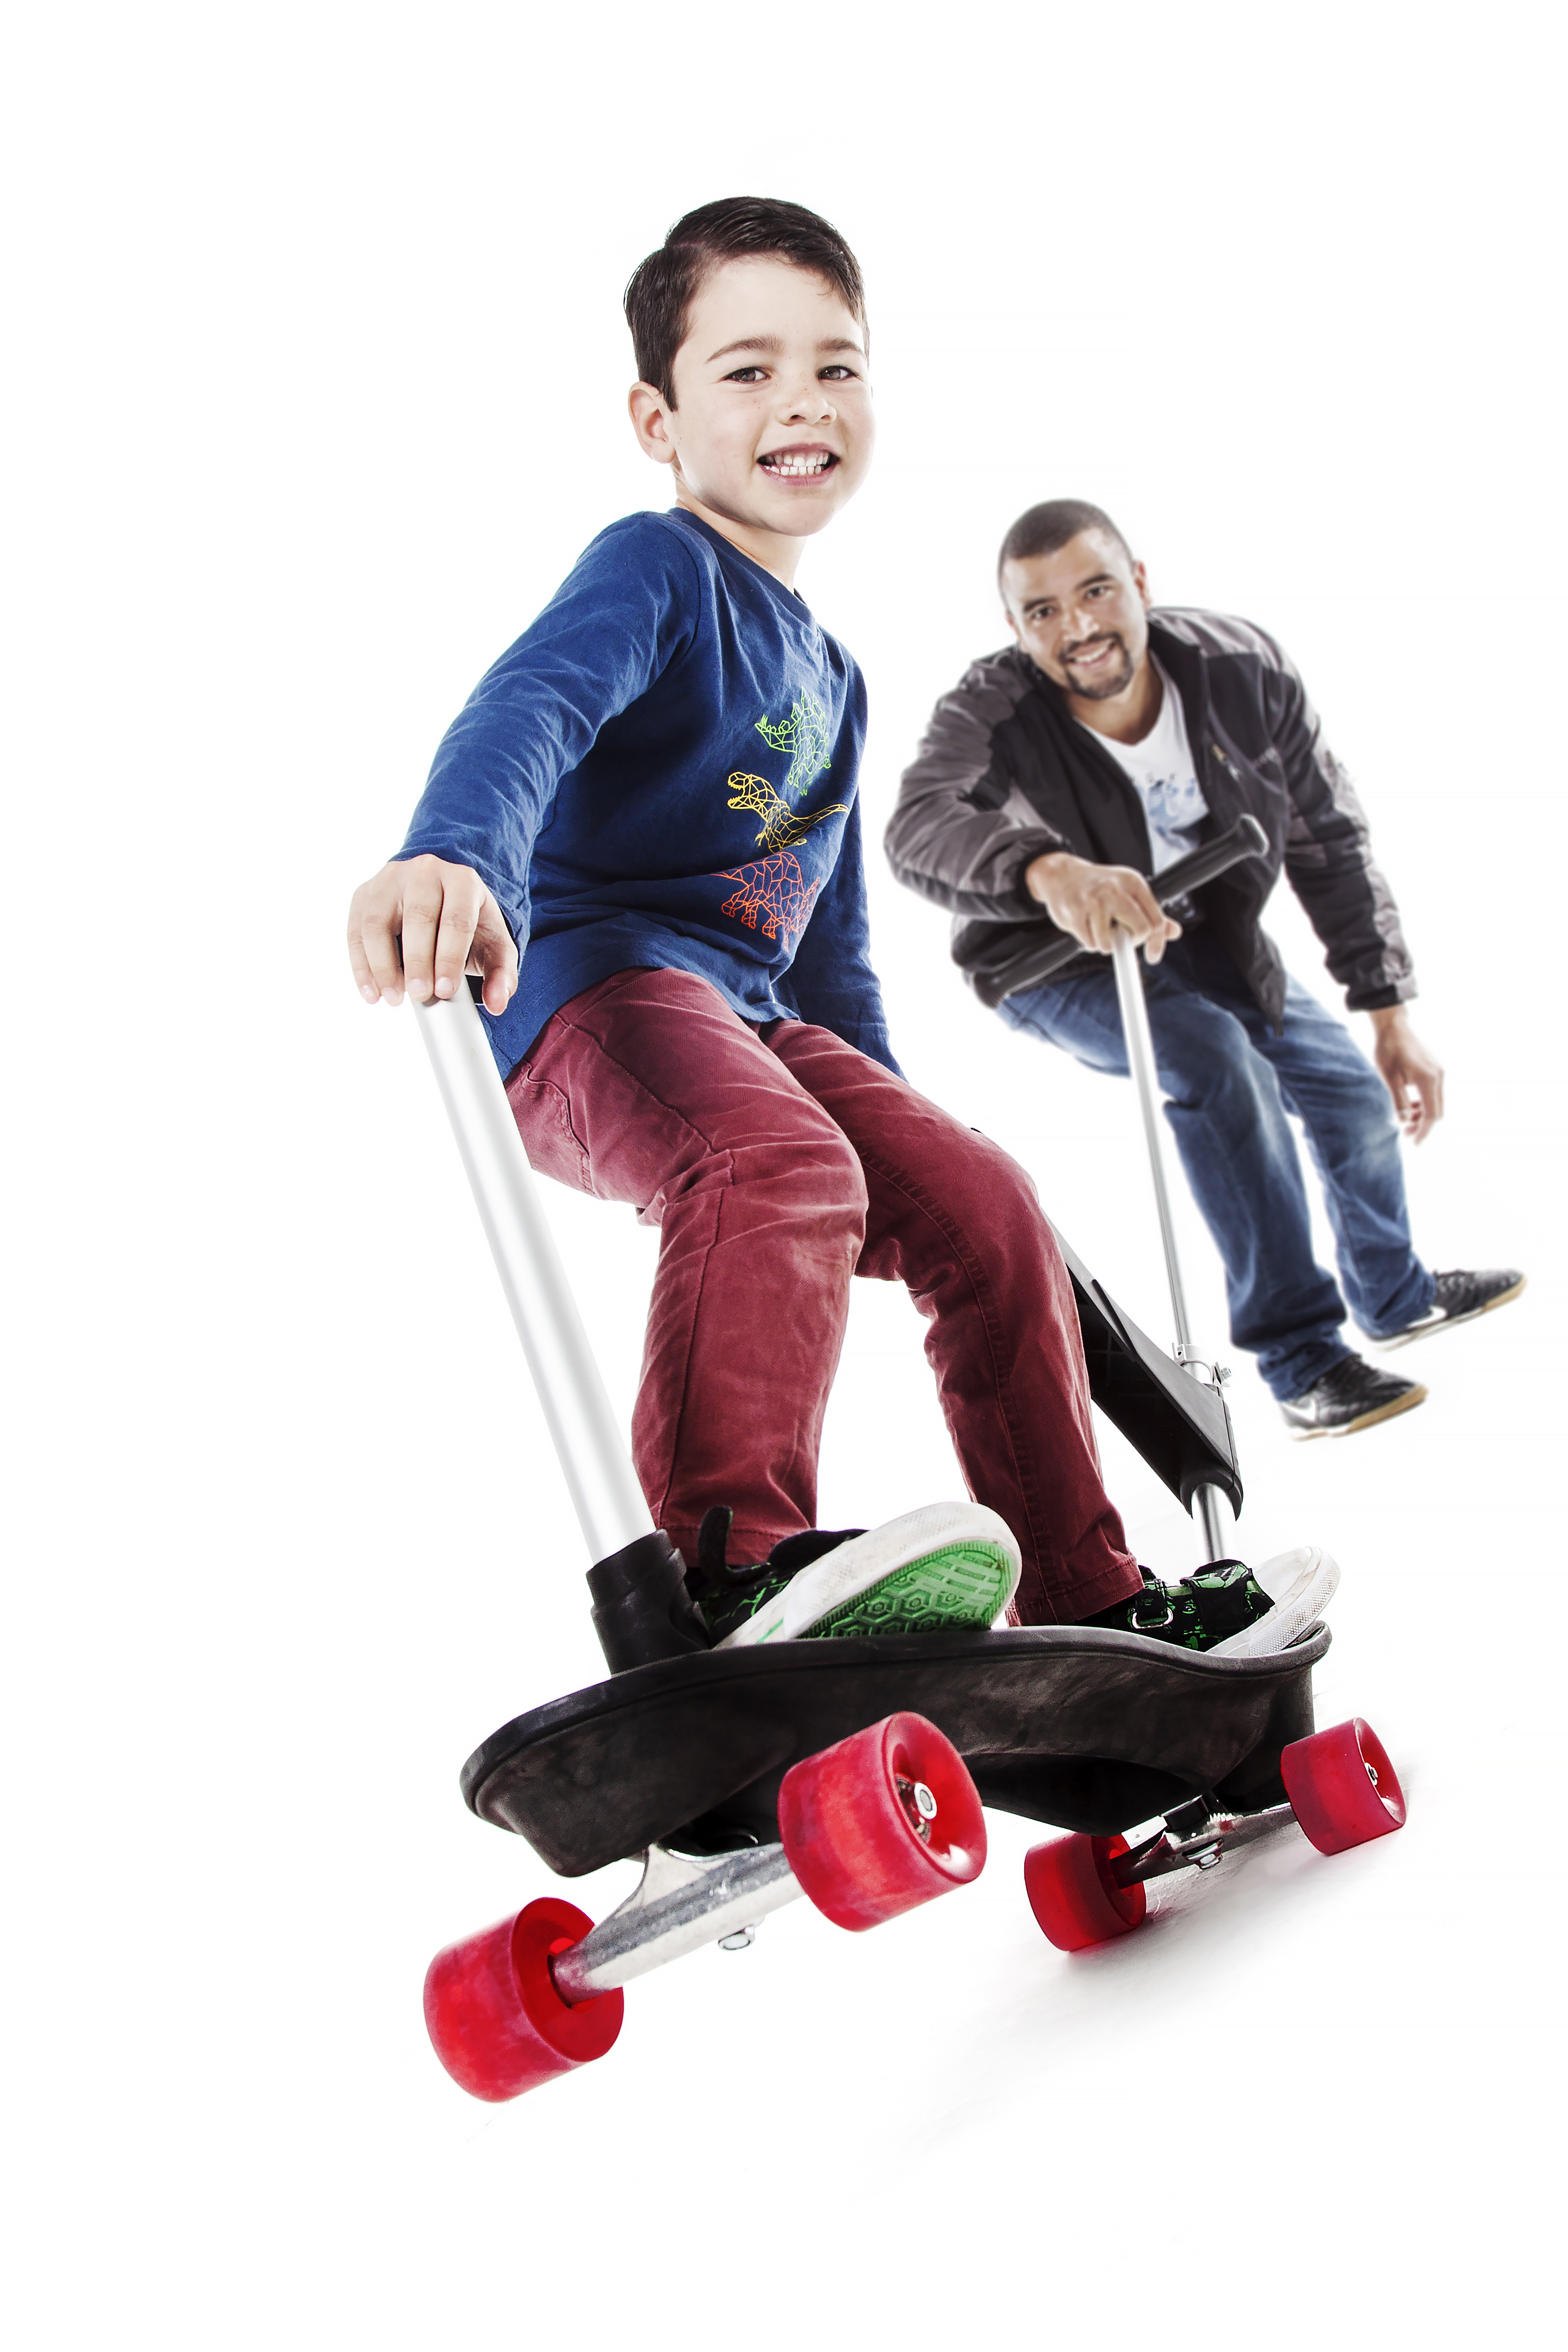 The ookkie™The World's Safest Skateboard for Kids | Newswire